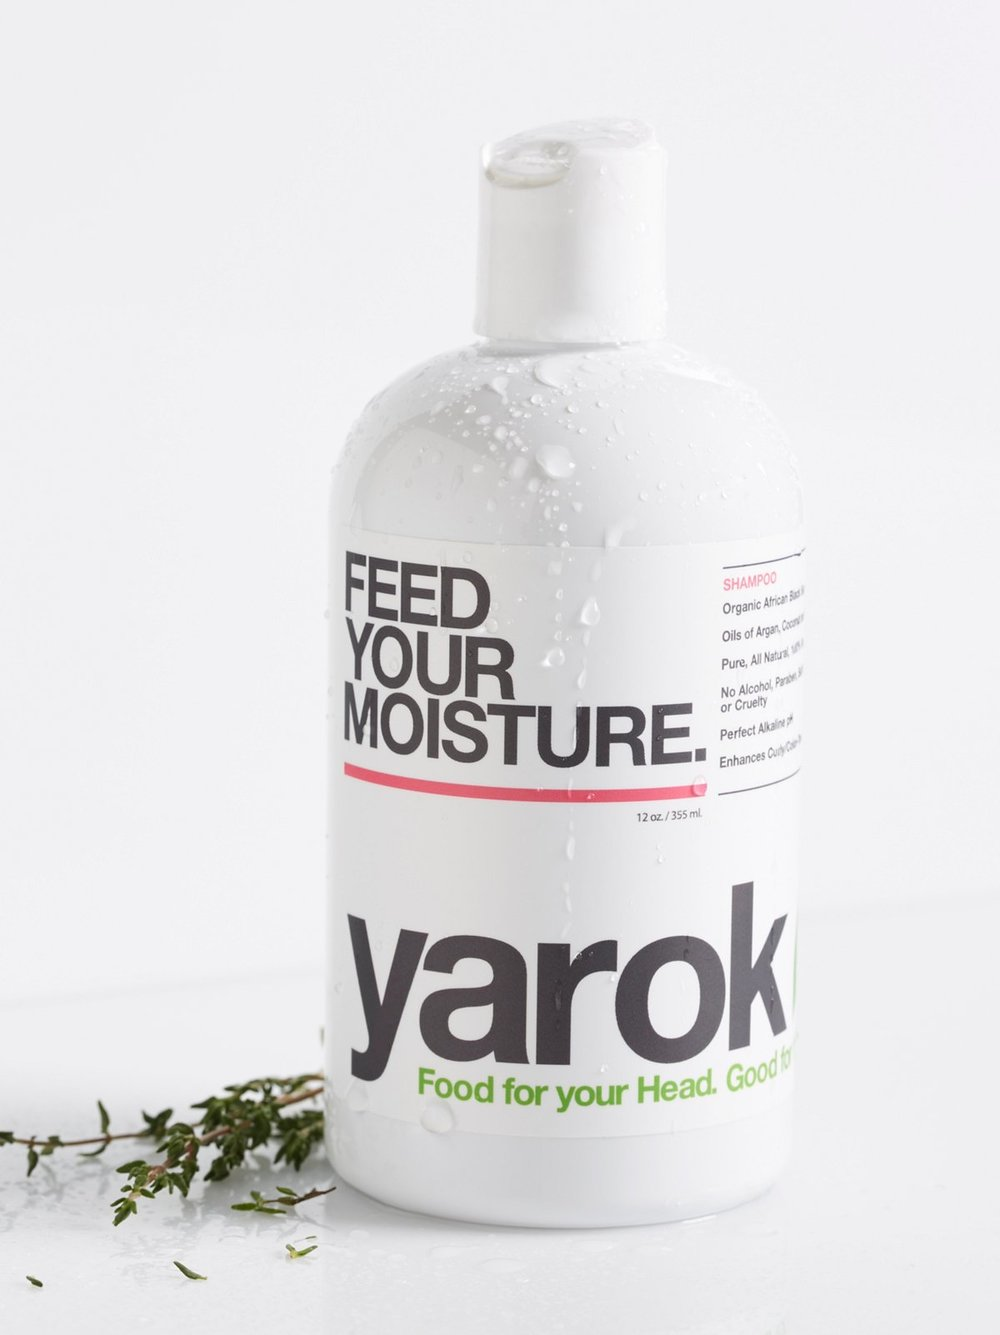 Feed Your Moisture Shampoo by Yarok